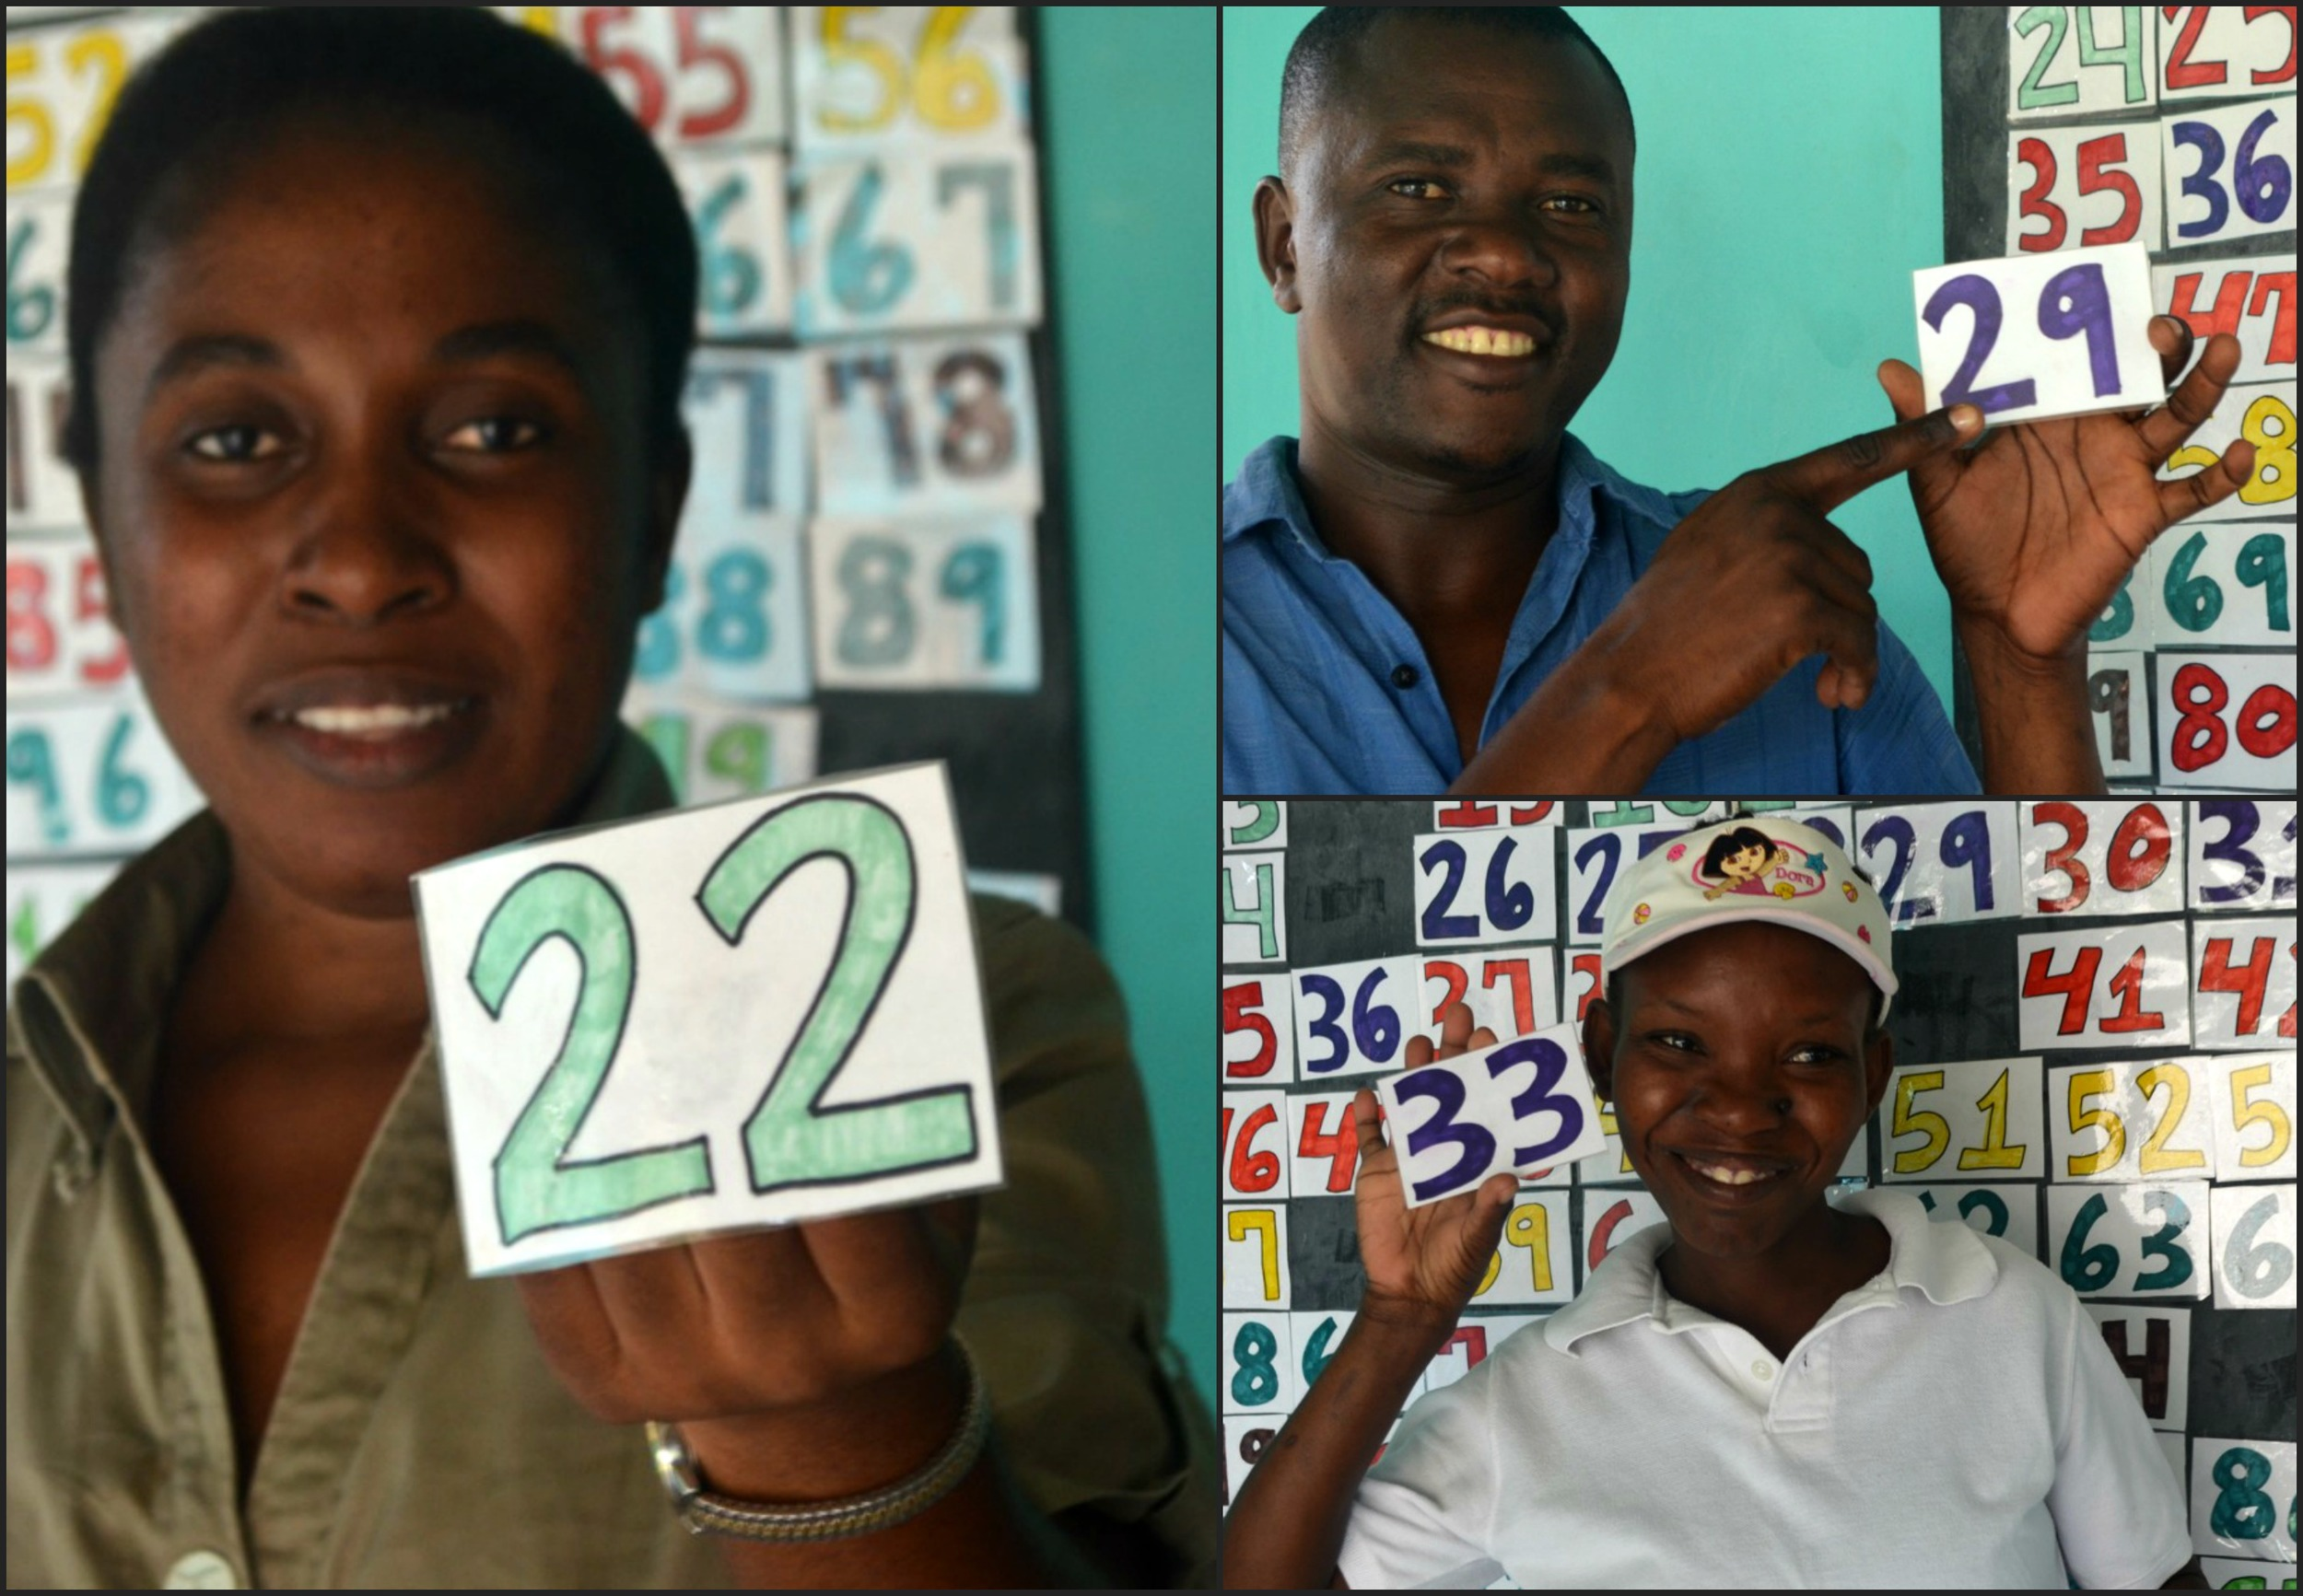 22 hours of education offered to moms each week, 29 months working for Second Mile, 33... this mom's favorite #